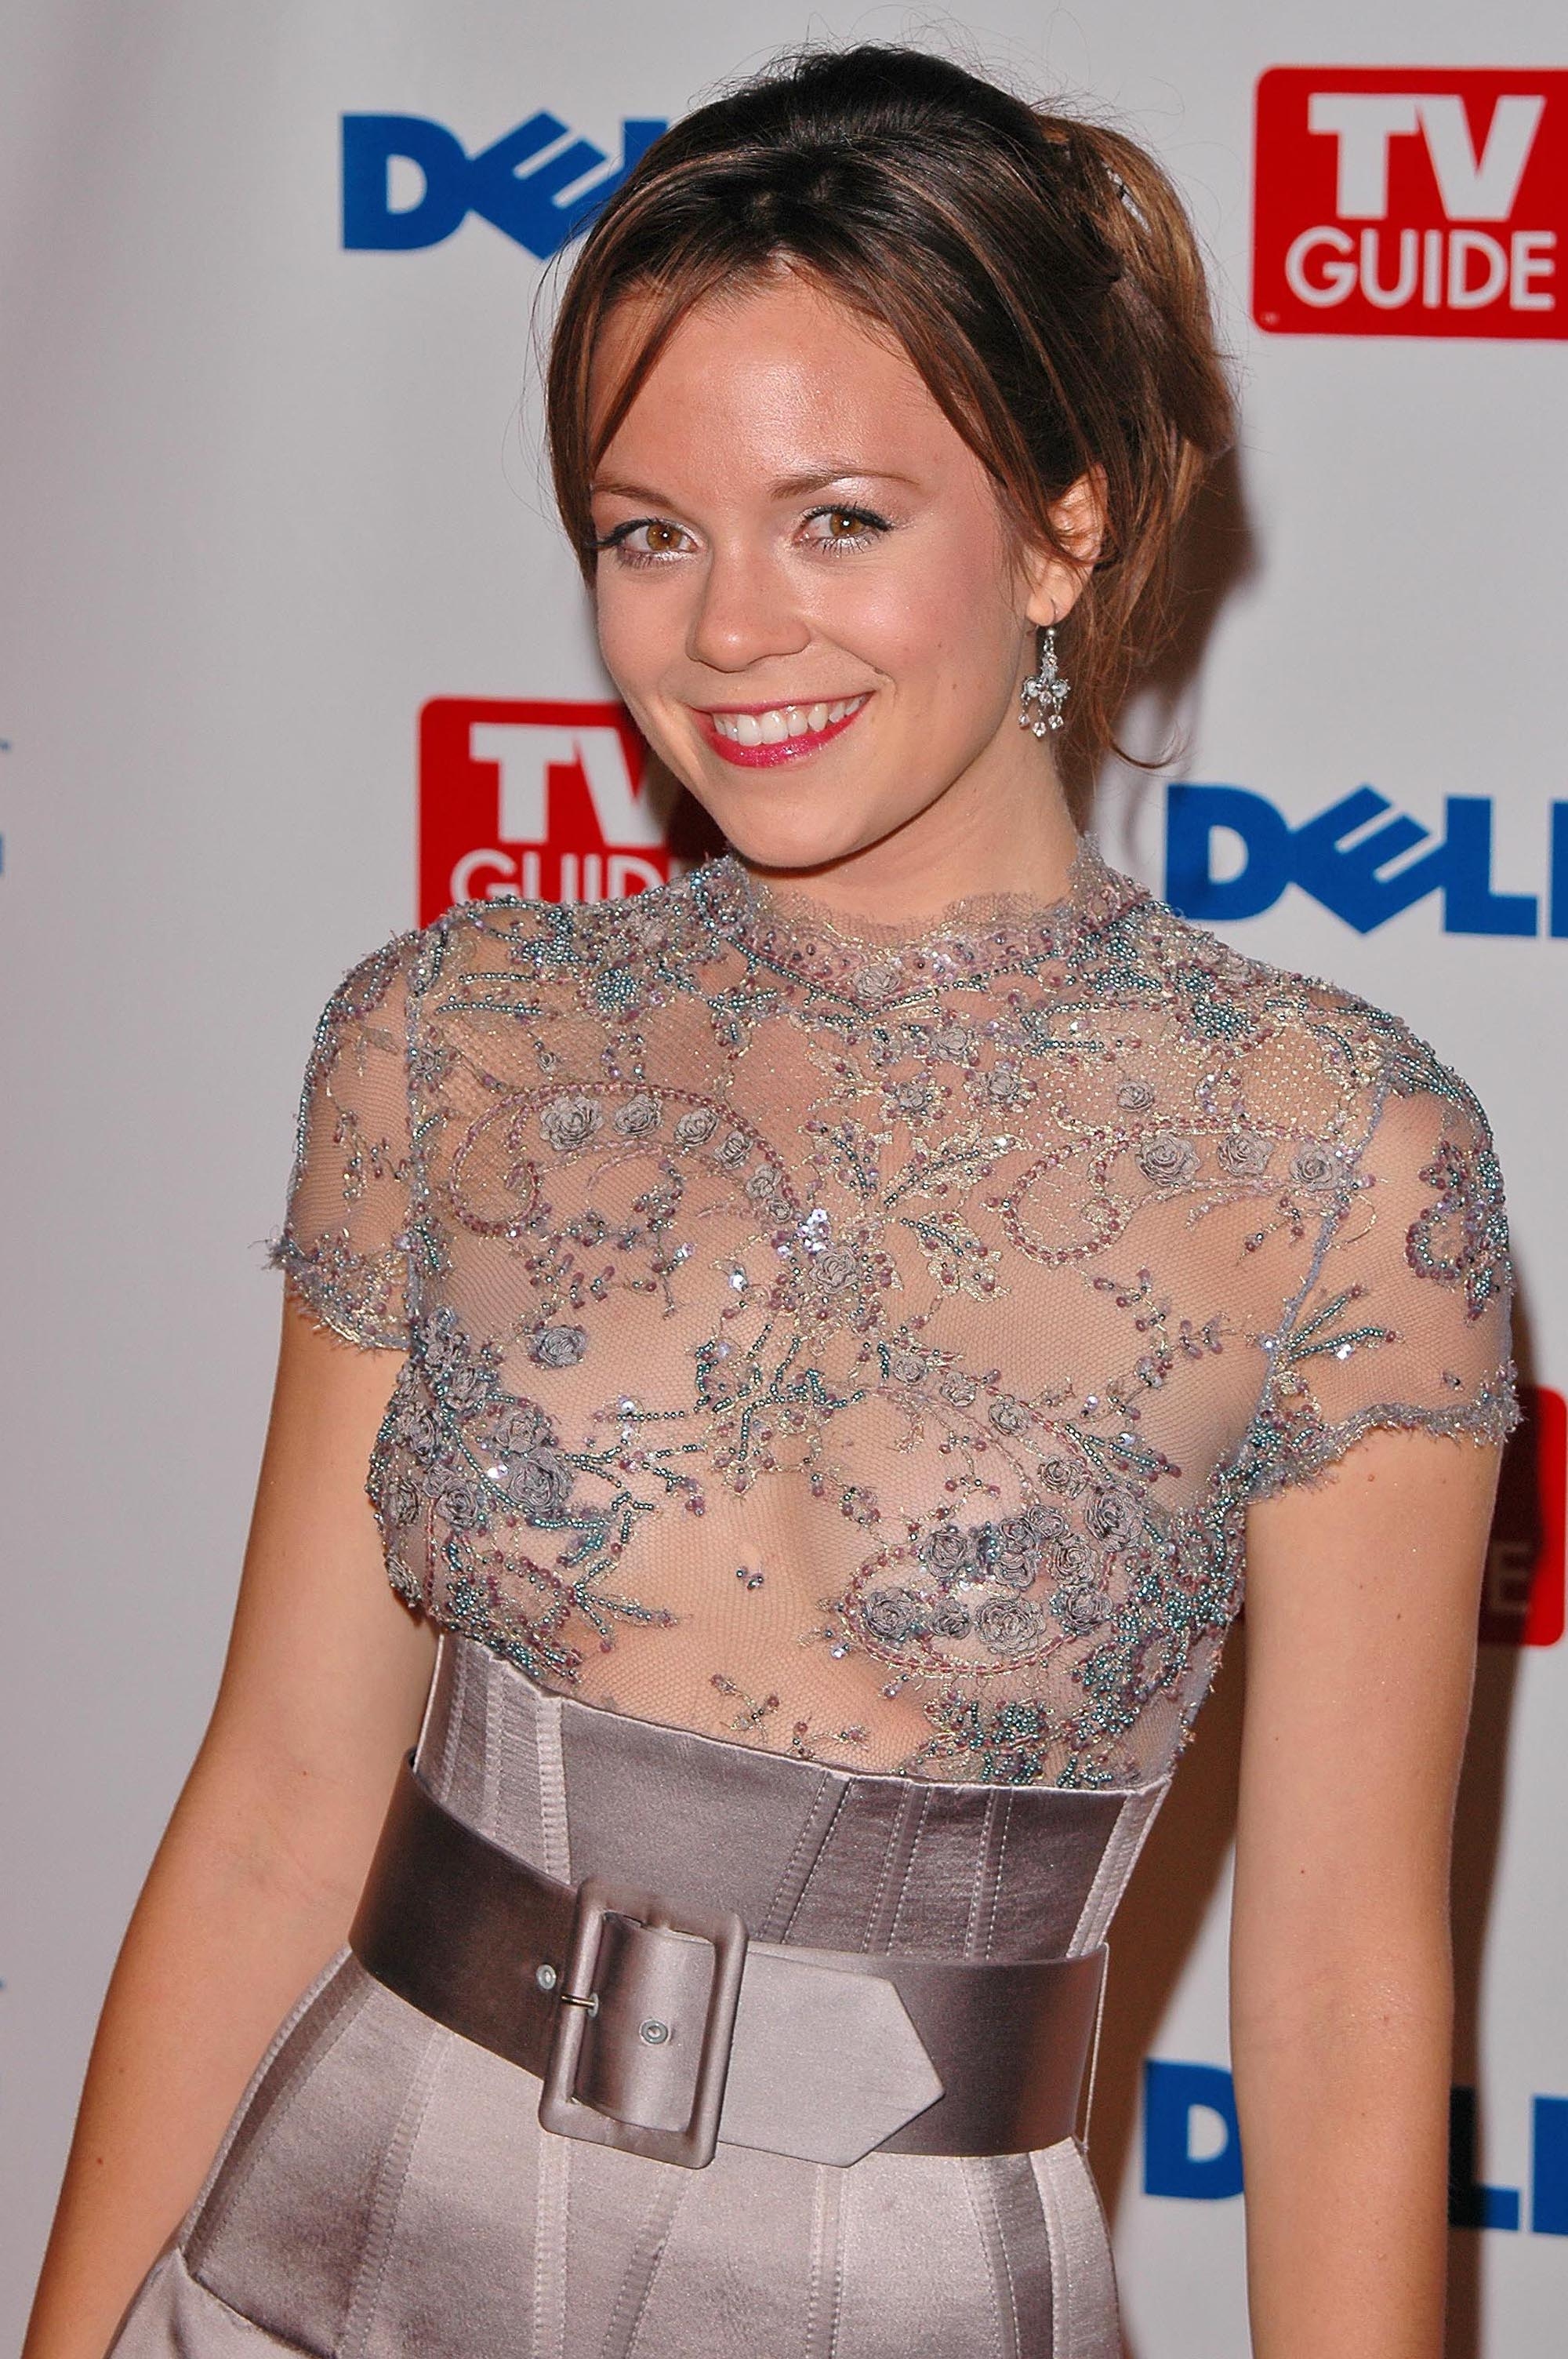 rachel boston biography